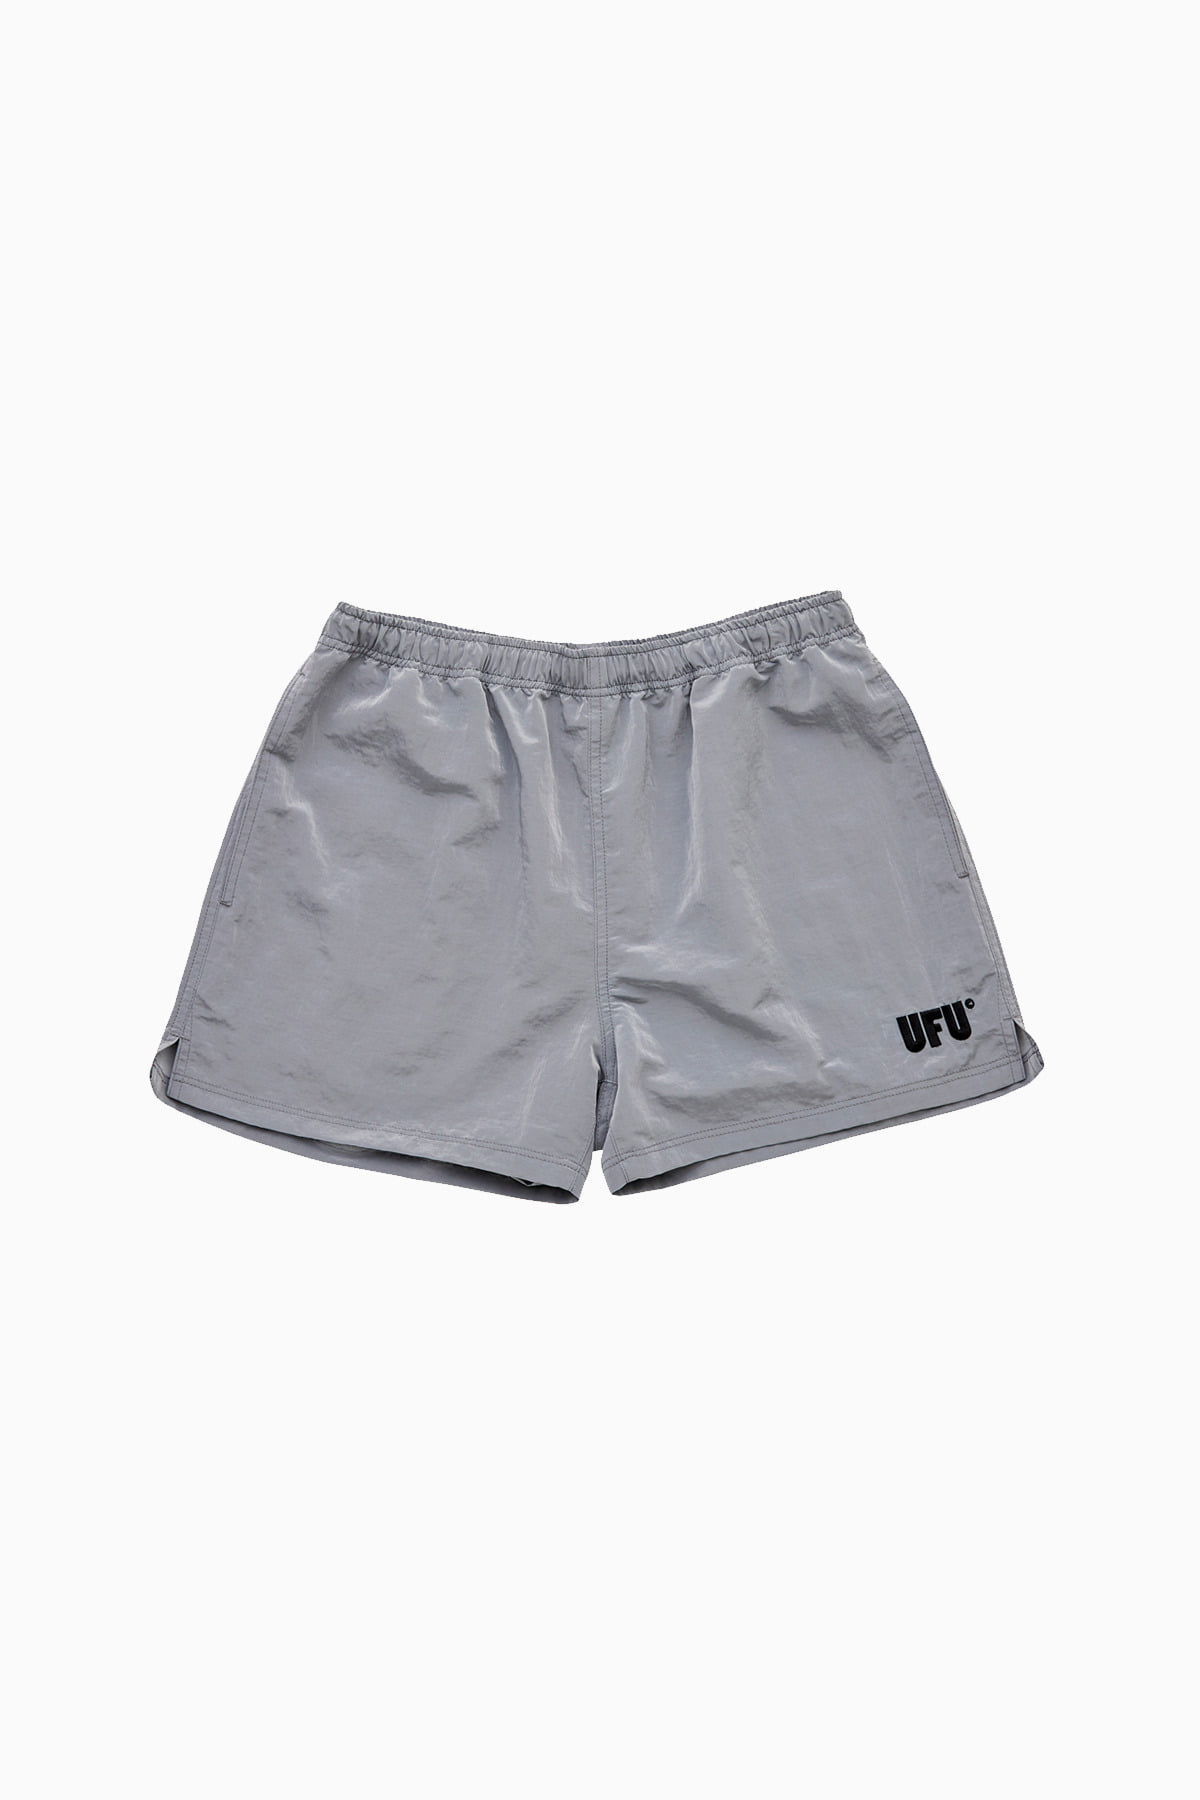 METAL SHORTS_GREY